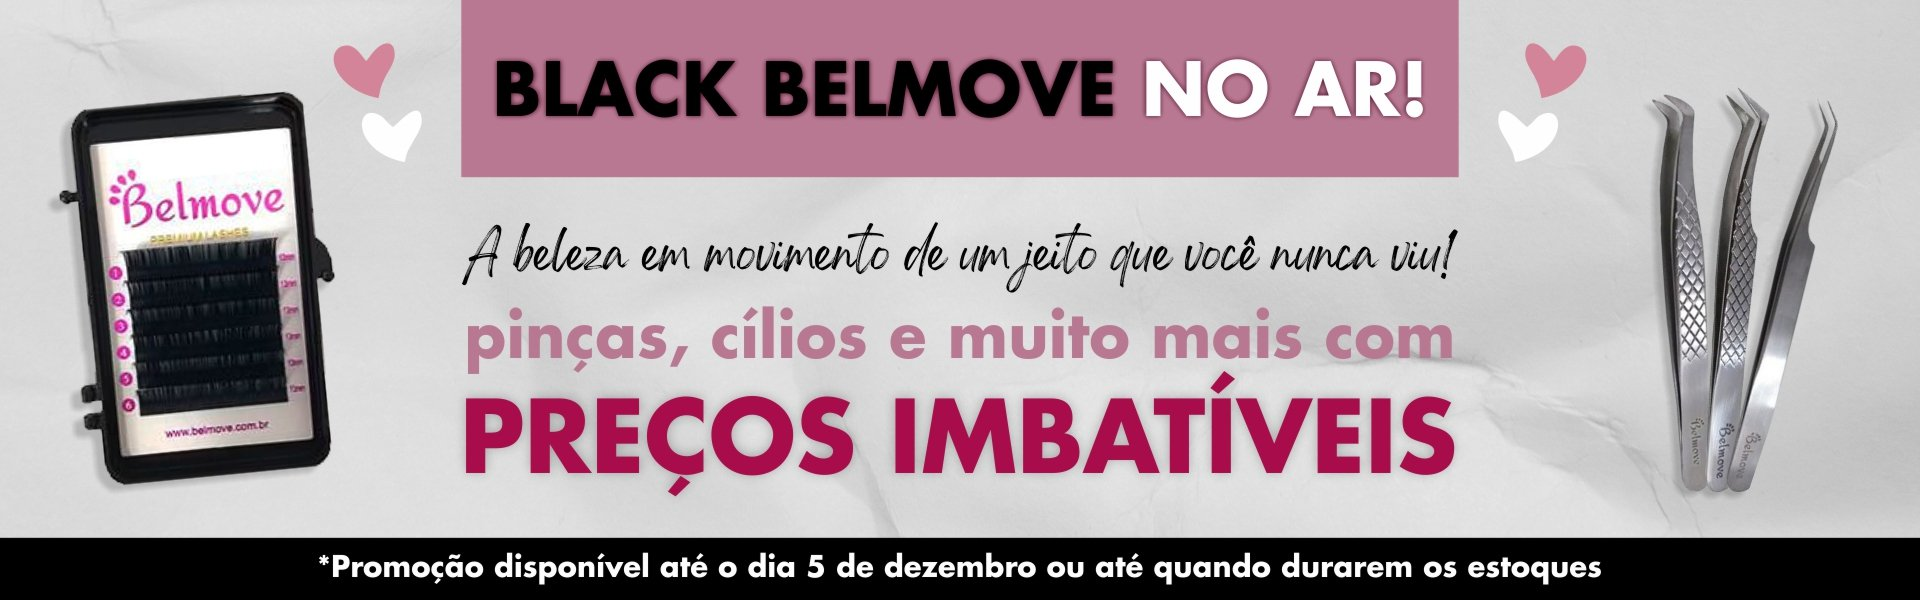 Full banner Black Belmove